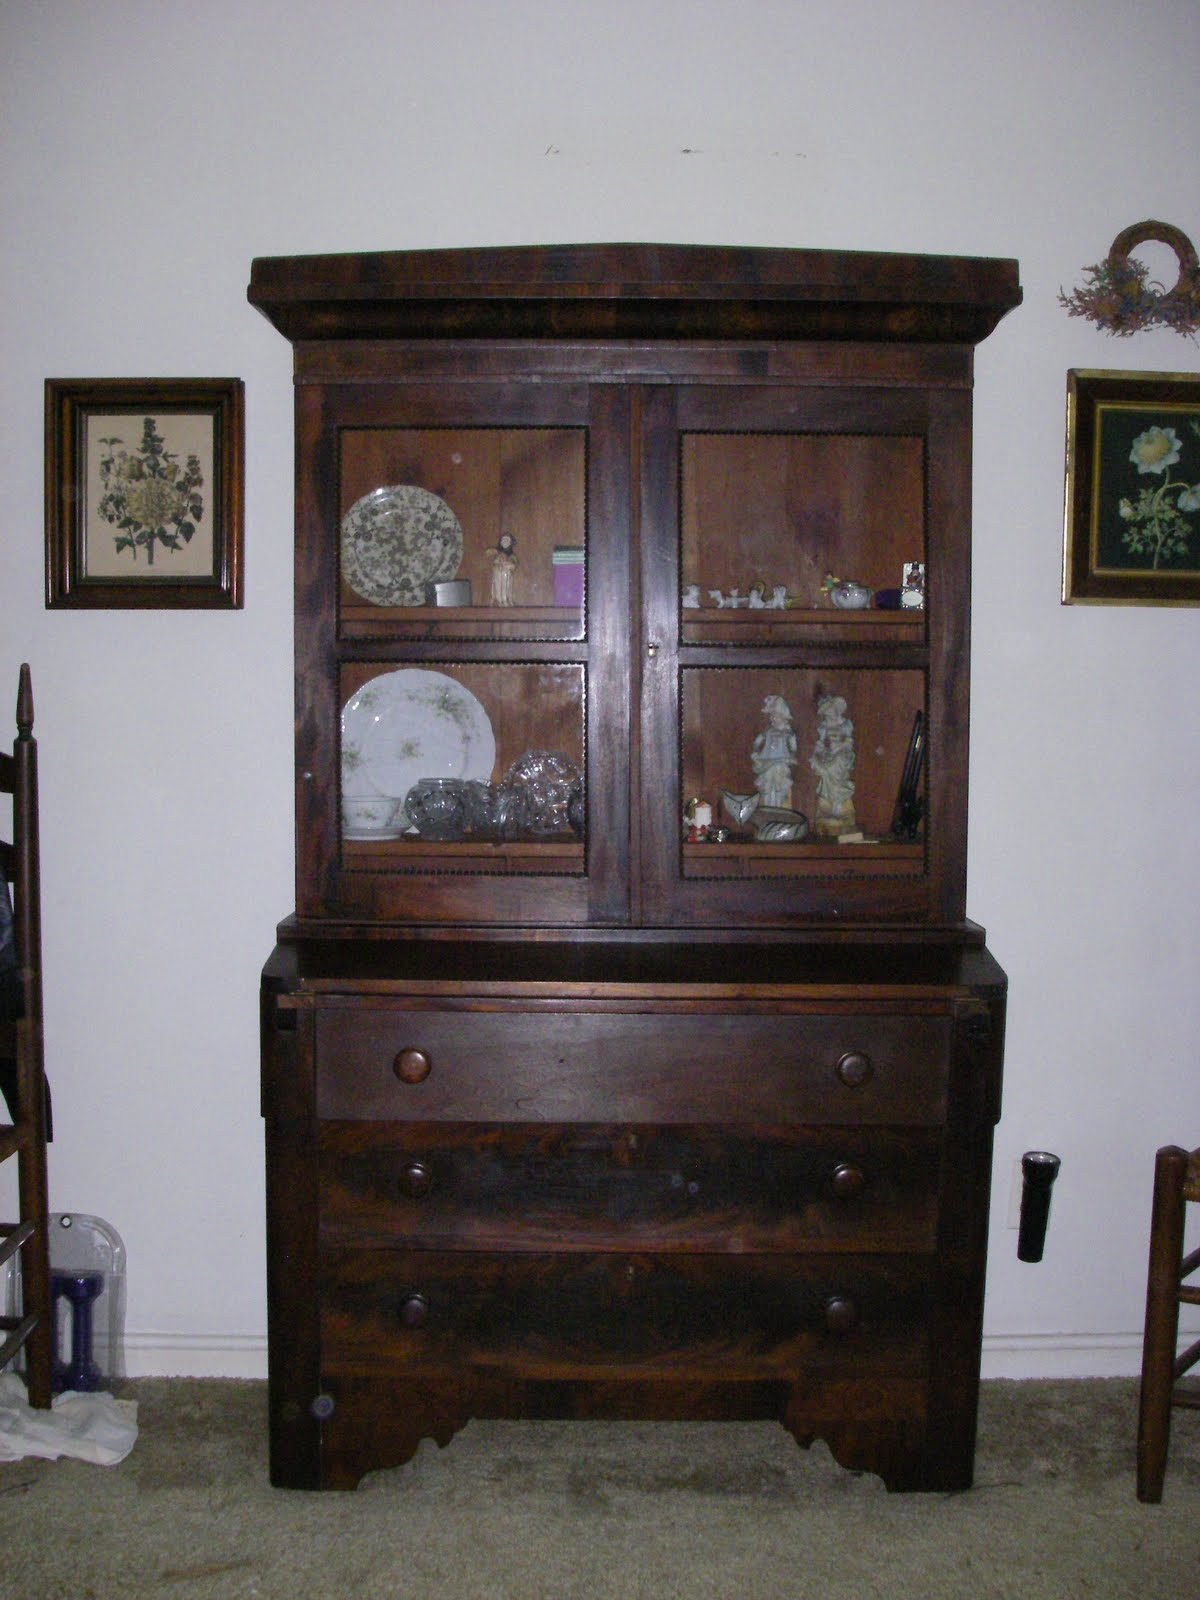 Antique Cabinet /Hutch with pull-out buffet shelf - Yard Sale/Furniture/Estate Sale: Antique Cabinet /Hutch With Pull